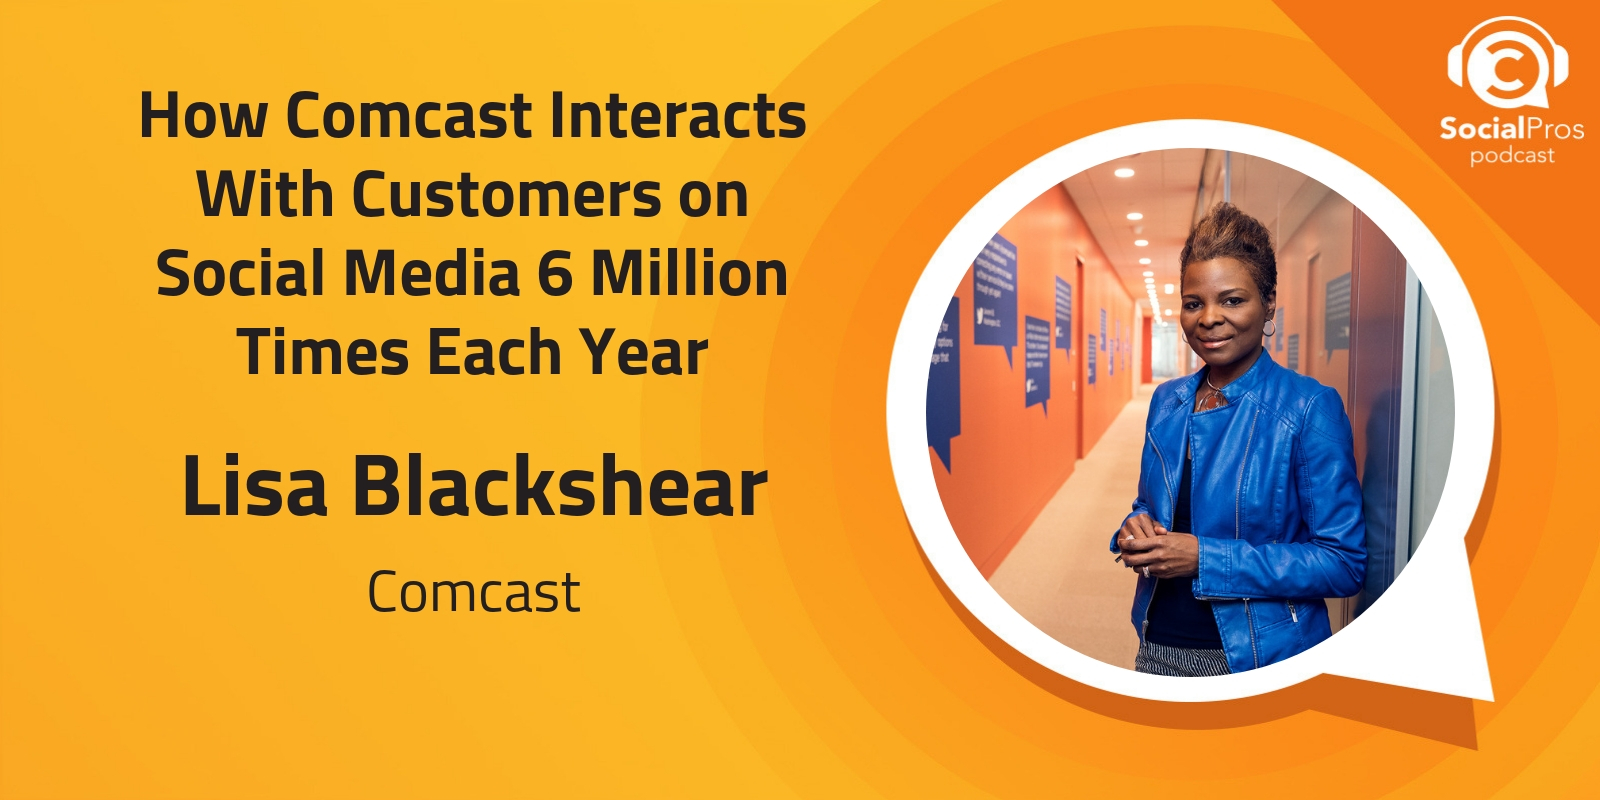 How Comcast Interacts With Customers on Social Media 6 Million